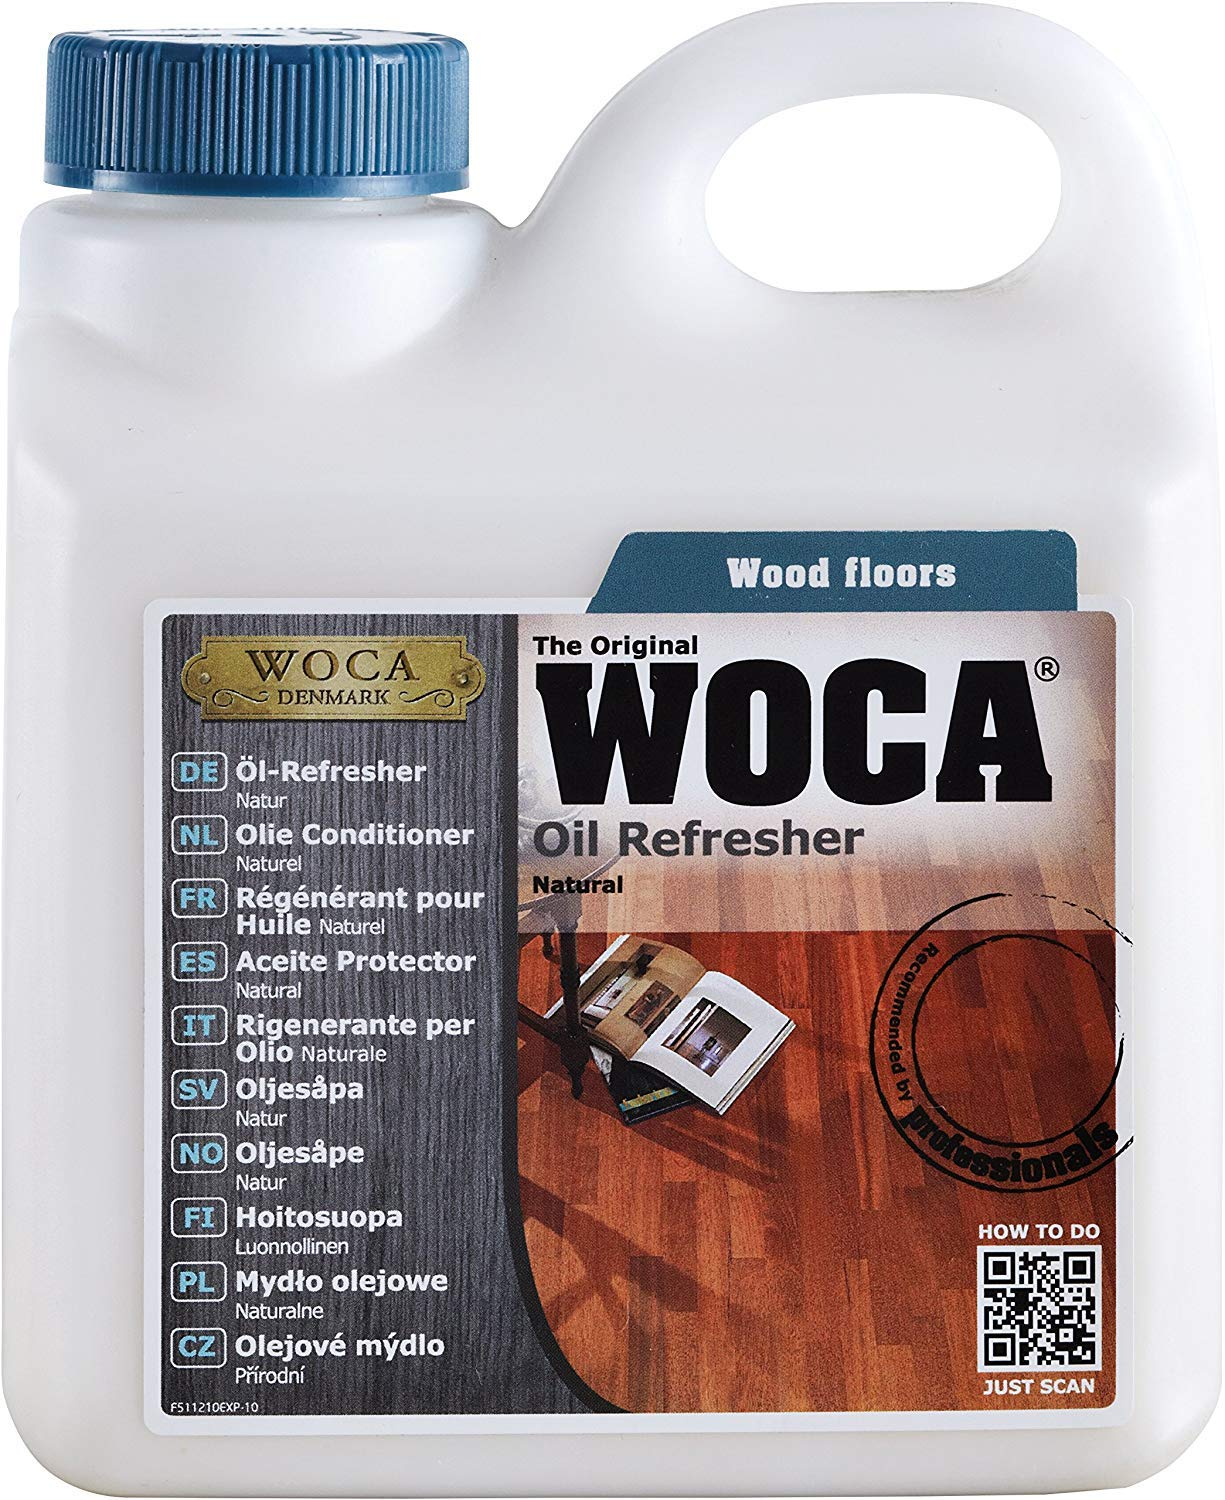 Woca Oil Refresher 1 Ltr (Natural) by WOCA Floor Oil